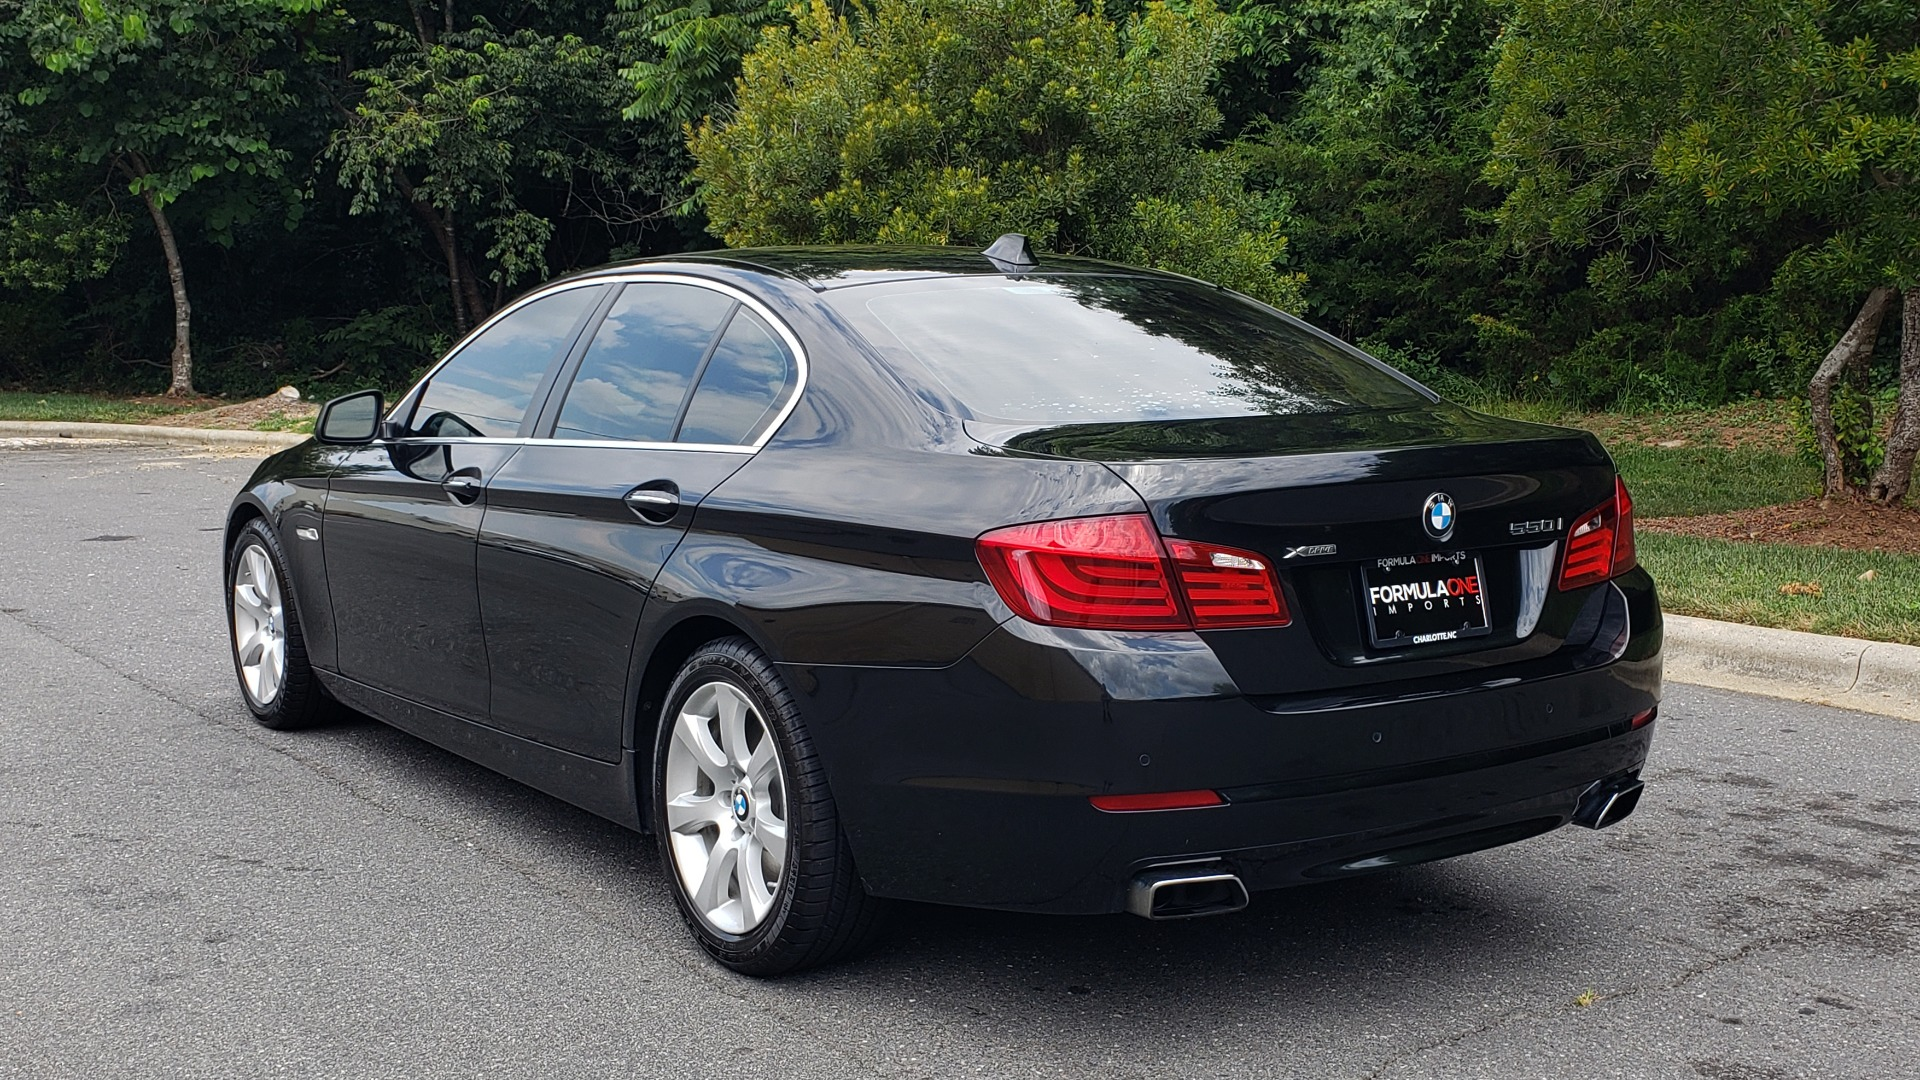 Used 2013 BMW 5 SERIES 550I XDRIVE LUX PKG / EXEC / COLD WTHR / NAV / SUNROOF / REARVIEW for sale $17,995 at Formula Imports in Charlotte NC 28227 3